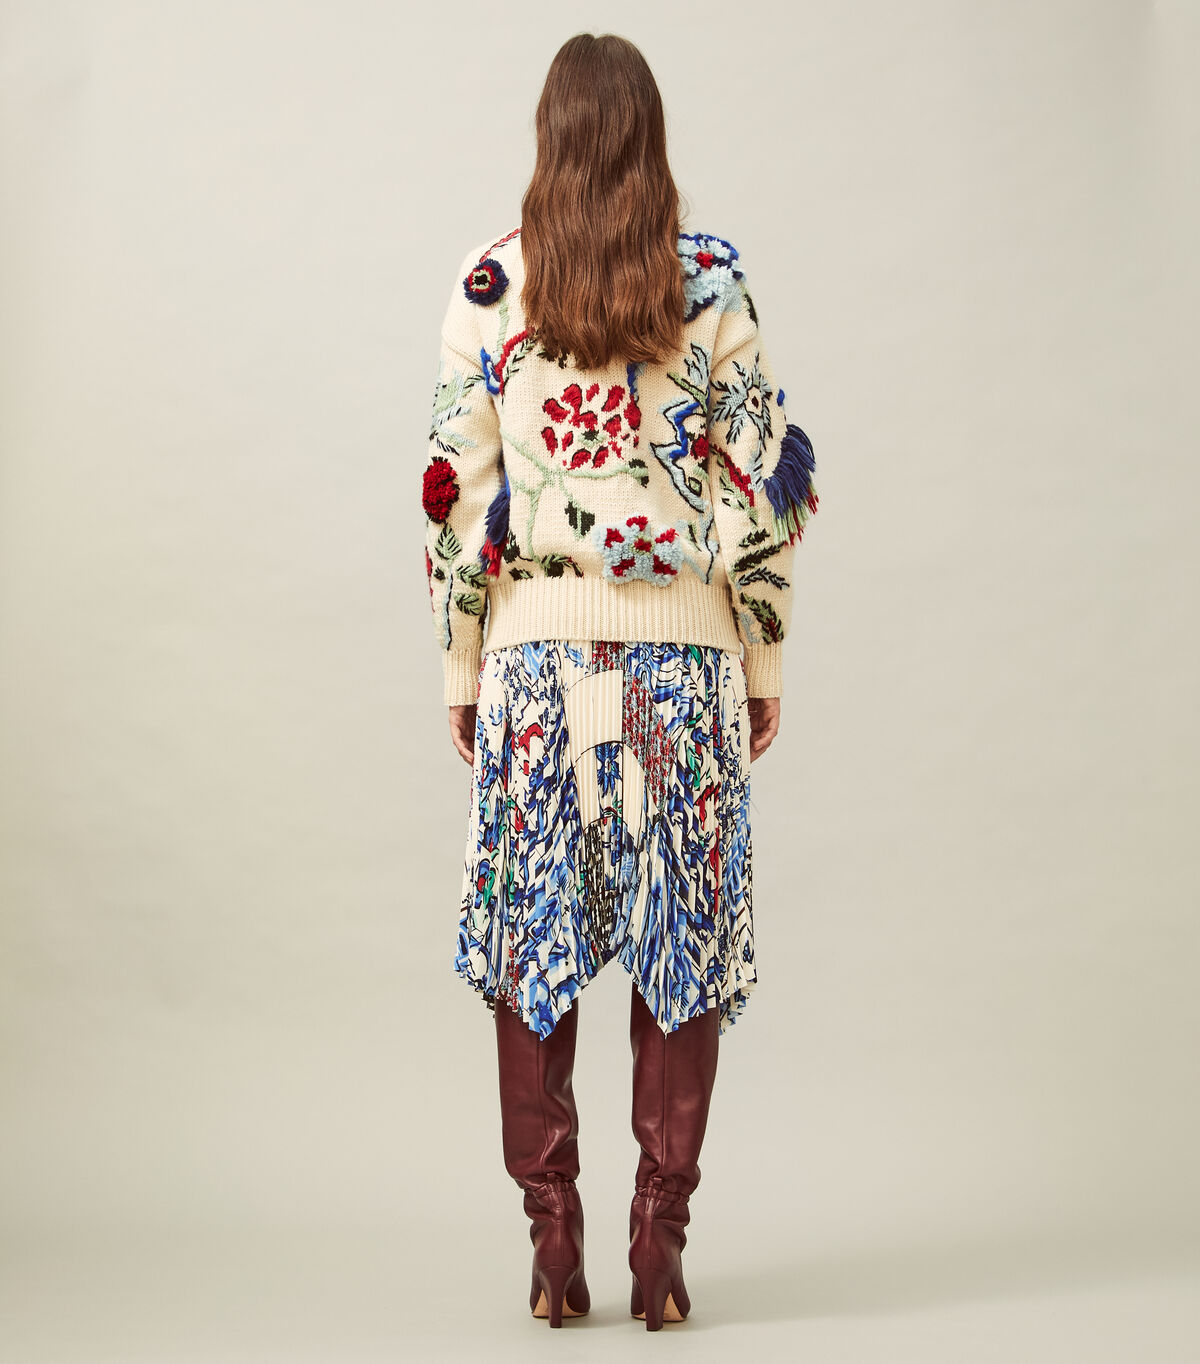 HAND-KNIT INTARSIA EMBROIDERED SWEATER